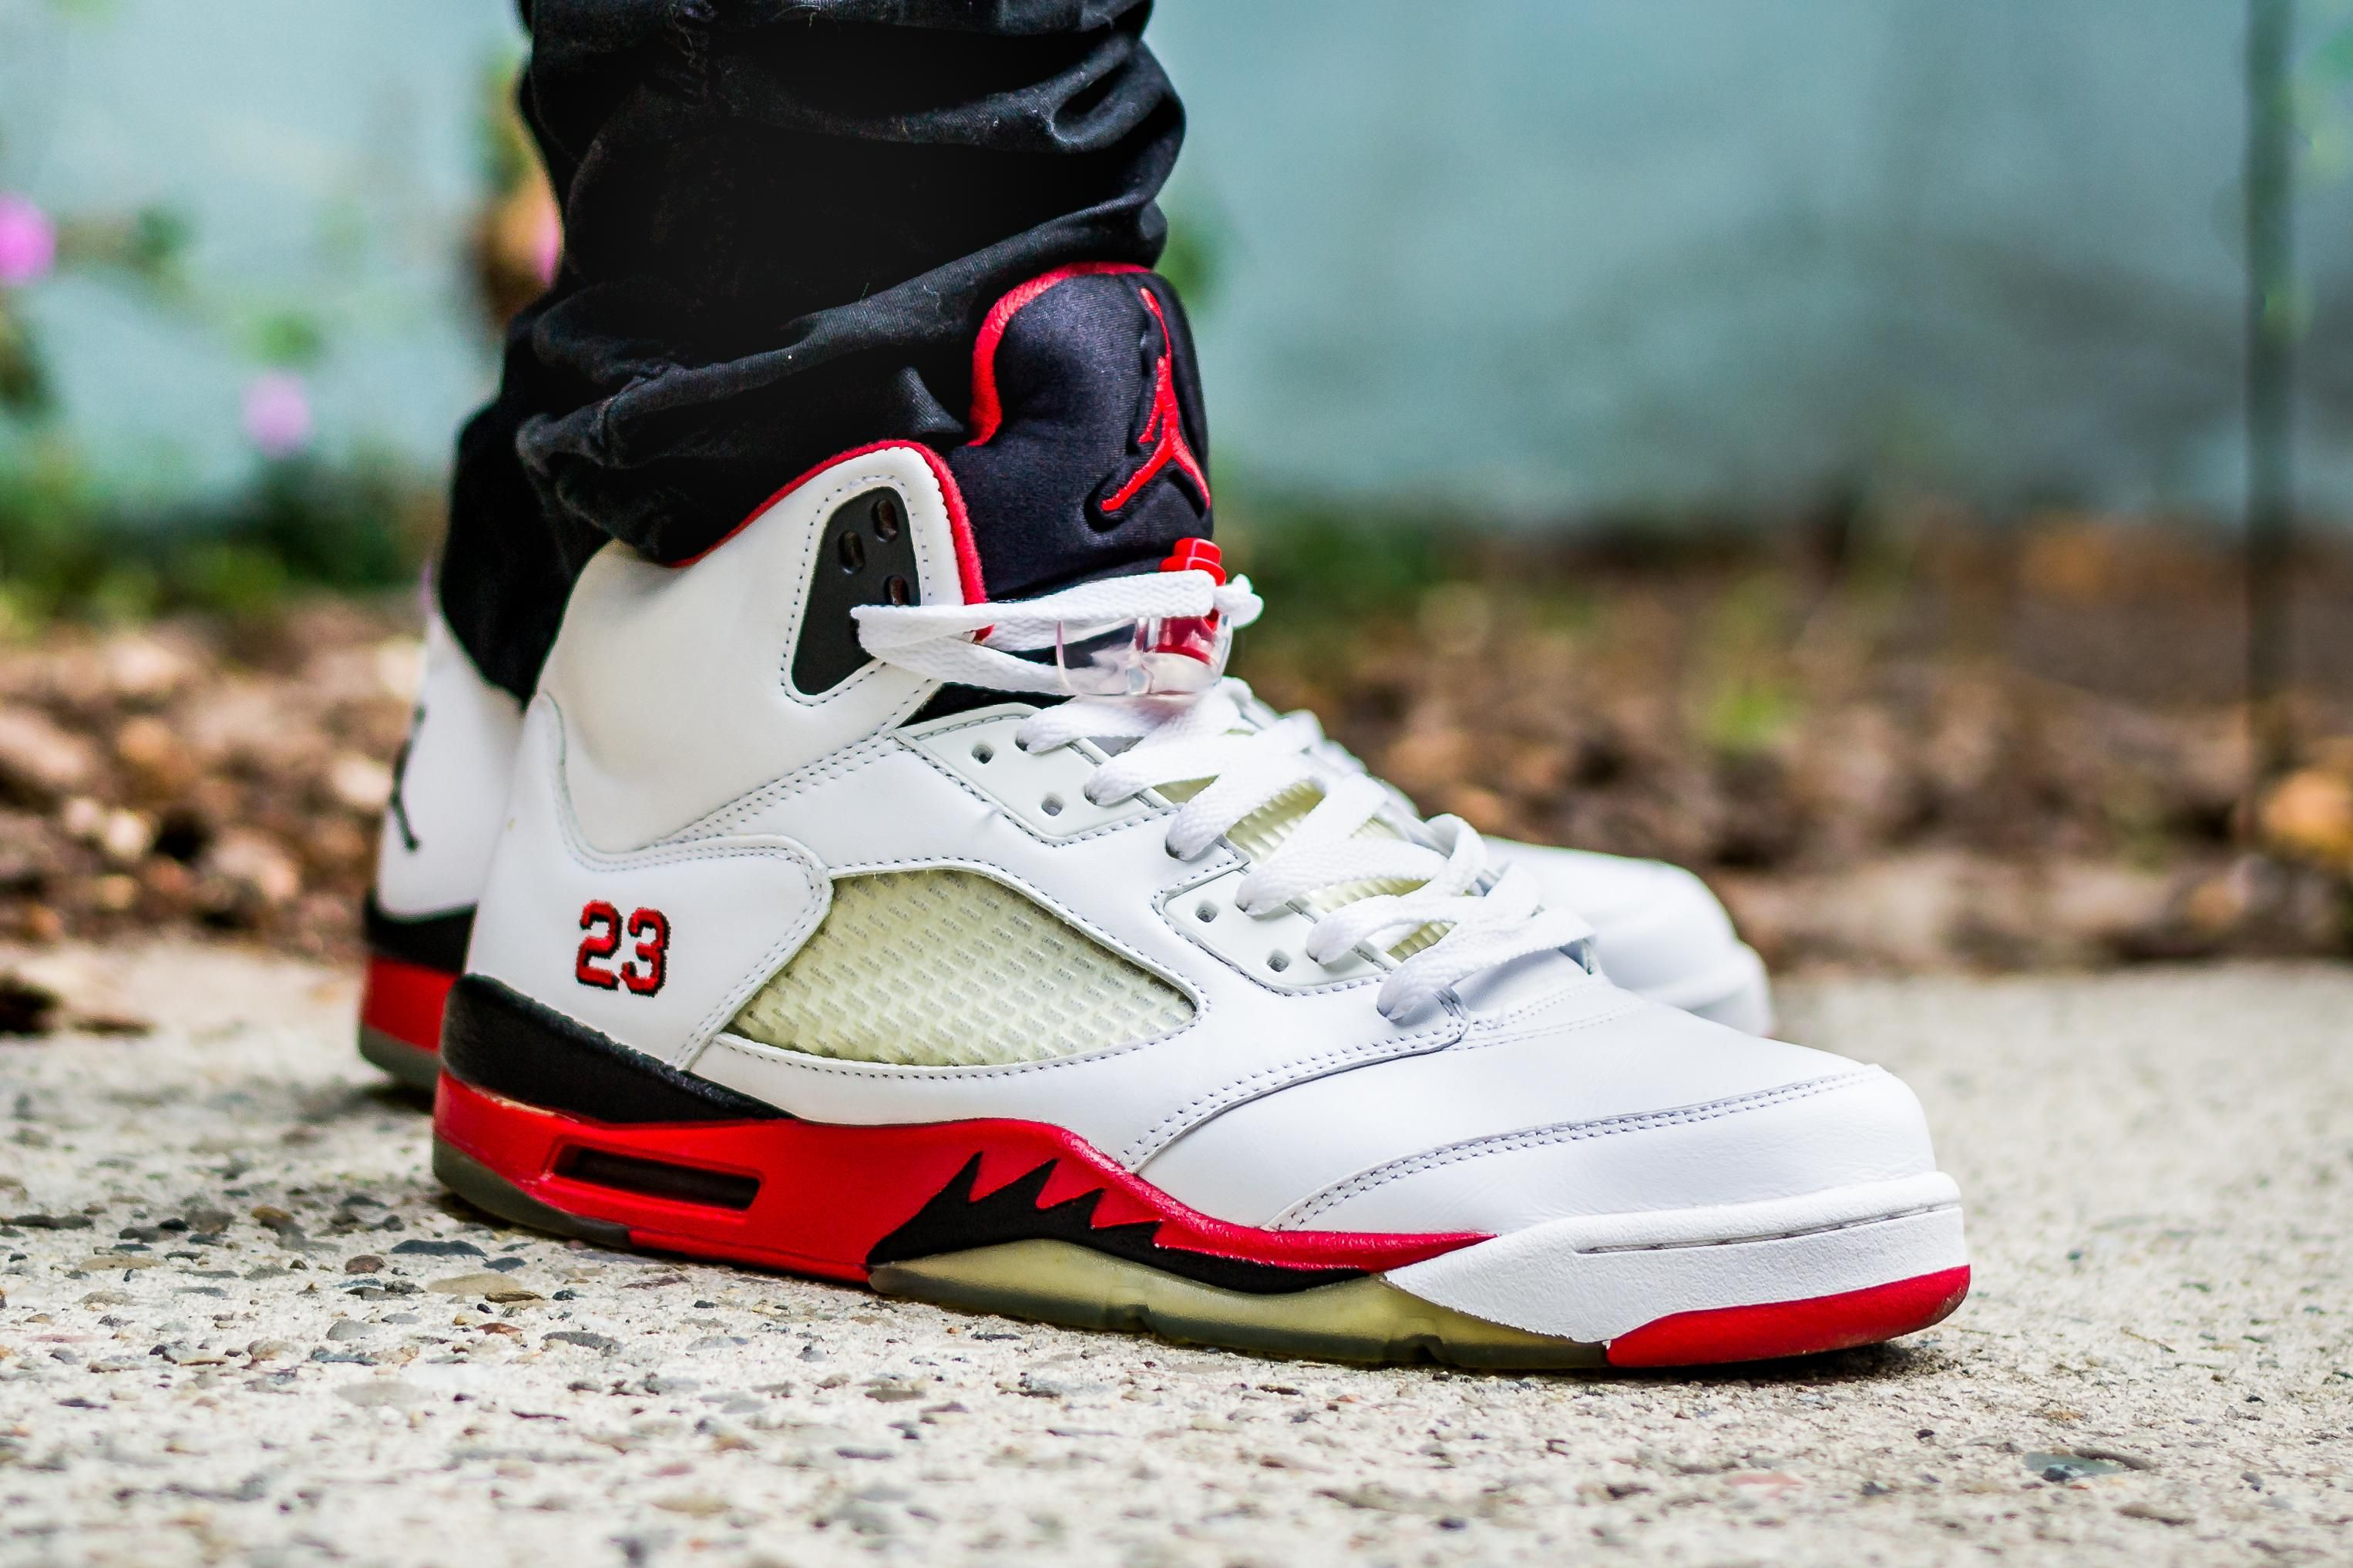 559e269d983e WDYWT  2006 Air Jordan 5 Fire Red